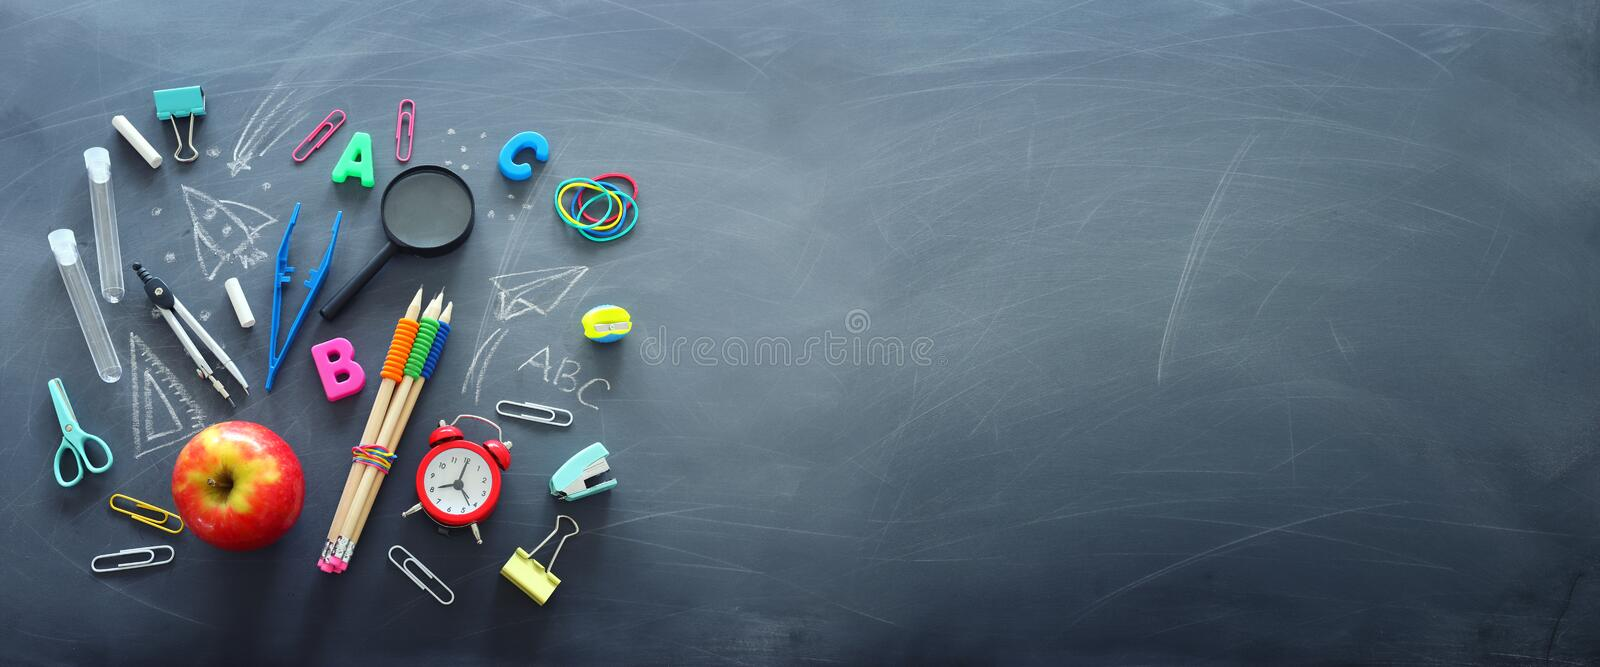 Education and back to school concept. shapes cut from paper and painted of backpack, books, chemistry flask and apple over royalty free stock photos